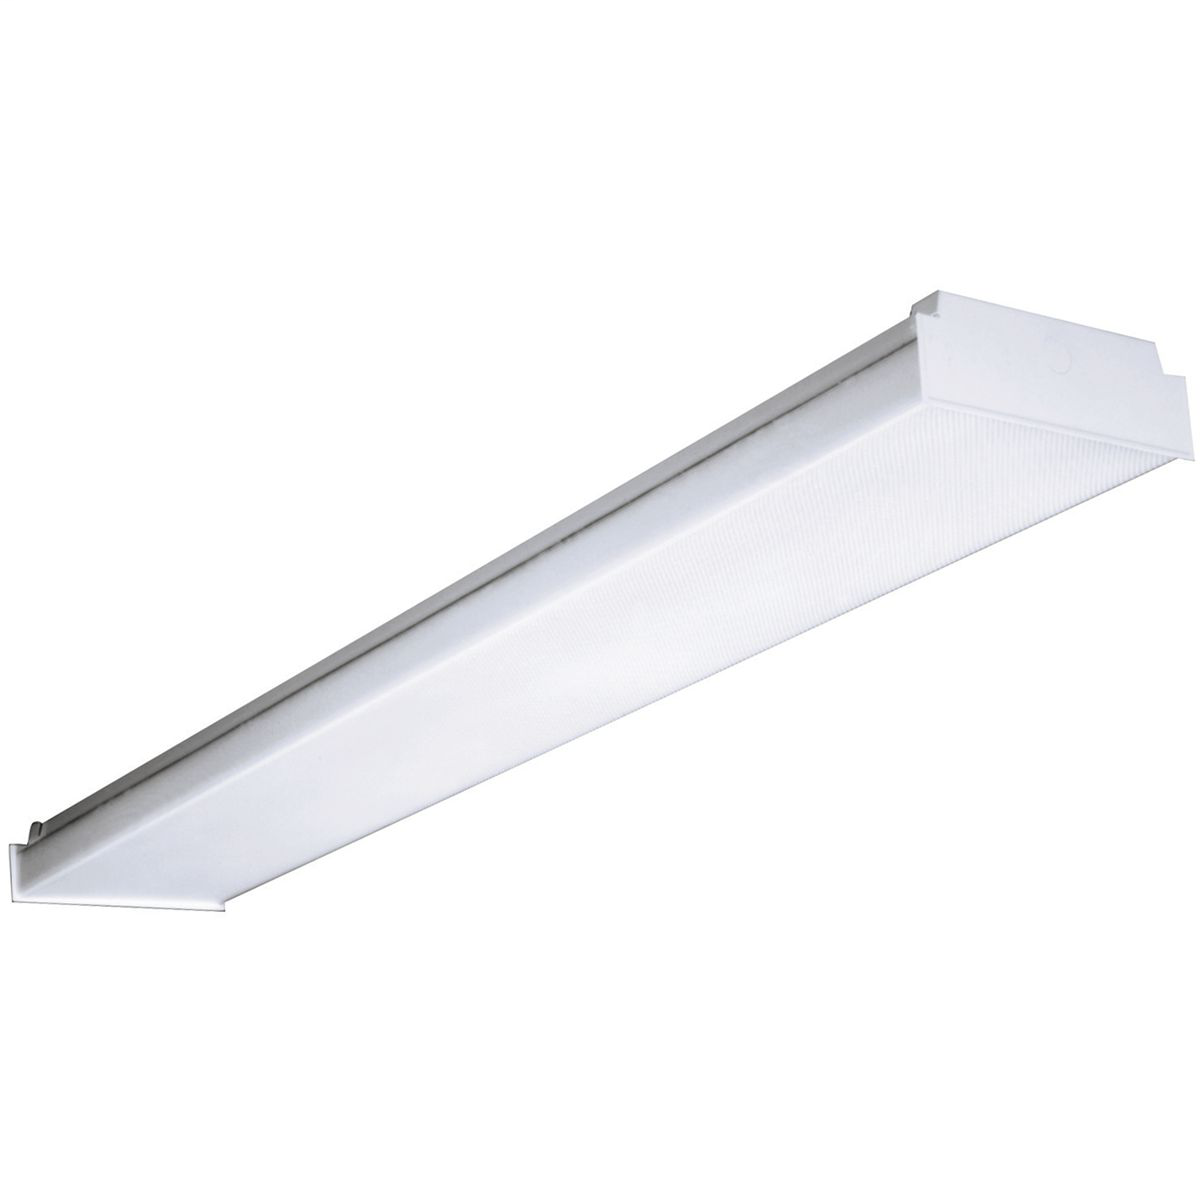 Columbia AWW4-432-4EU 4 Foot (4) F32T8 Wrap Around Fixture 120-277V Universal Voltage Electronic (Less Than 10% THD) Ballast Low Profile (w/o Lamps)